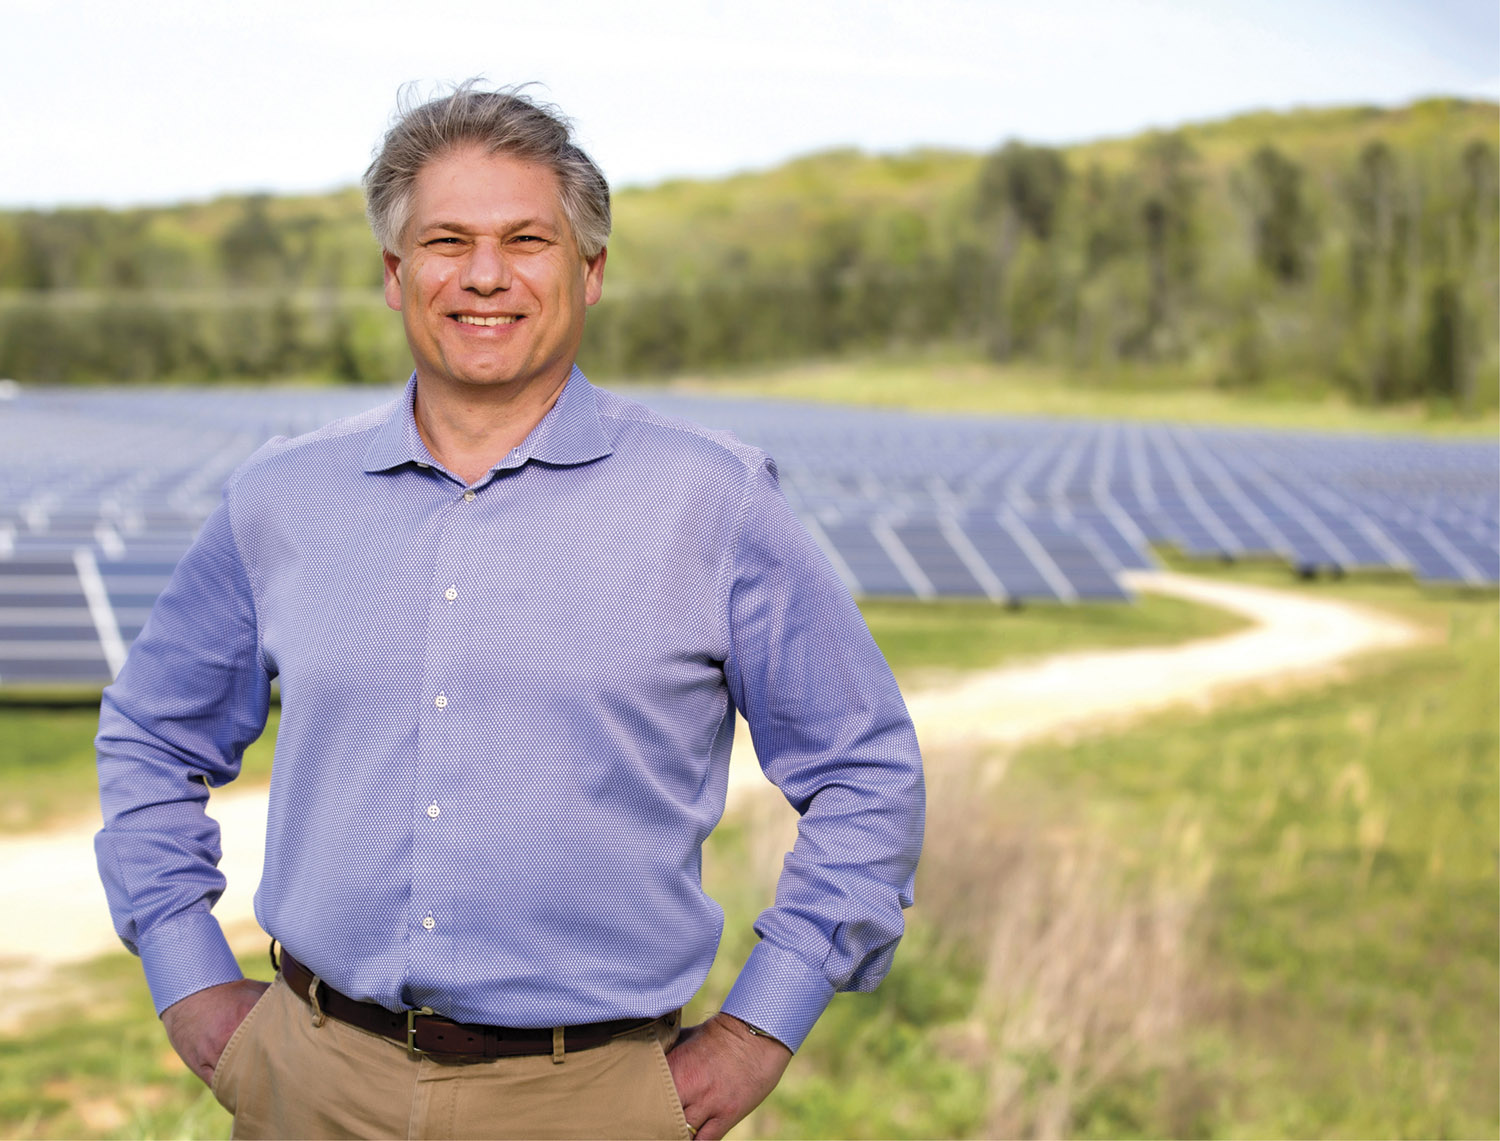 Matt Kisber, president and CEO of Silicon Ranch, at the solar farm his company constructed for Volkswagen in Chattanooga, Tennessee (JOE HOWELL)